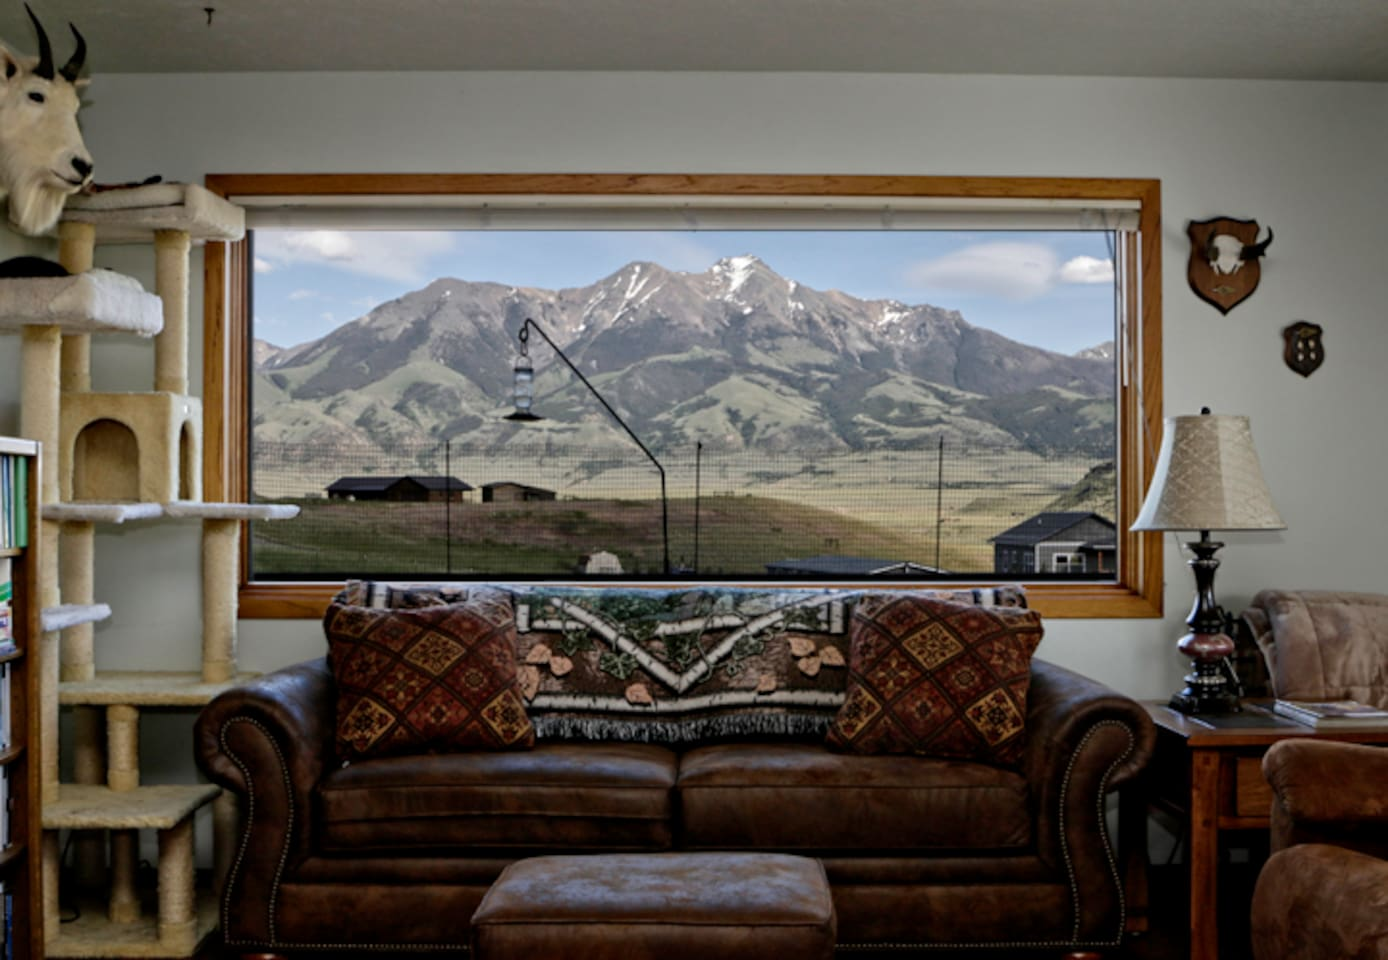 Here's your view of Emigrant Peak from the living room. It was taken from the love seat.